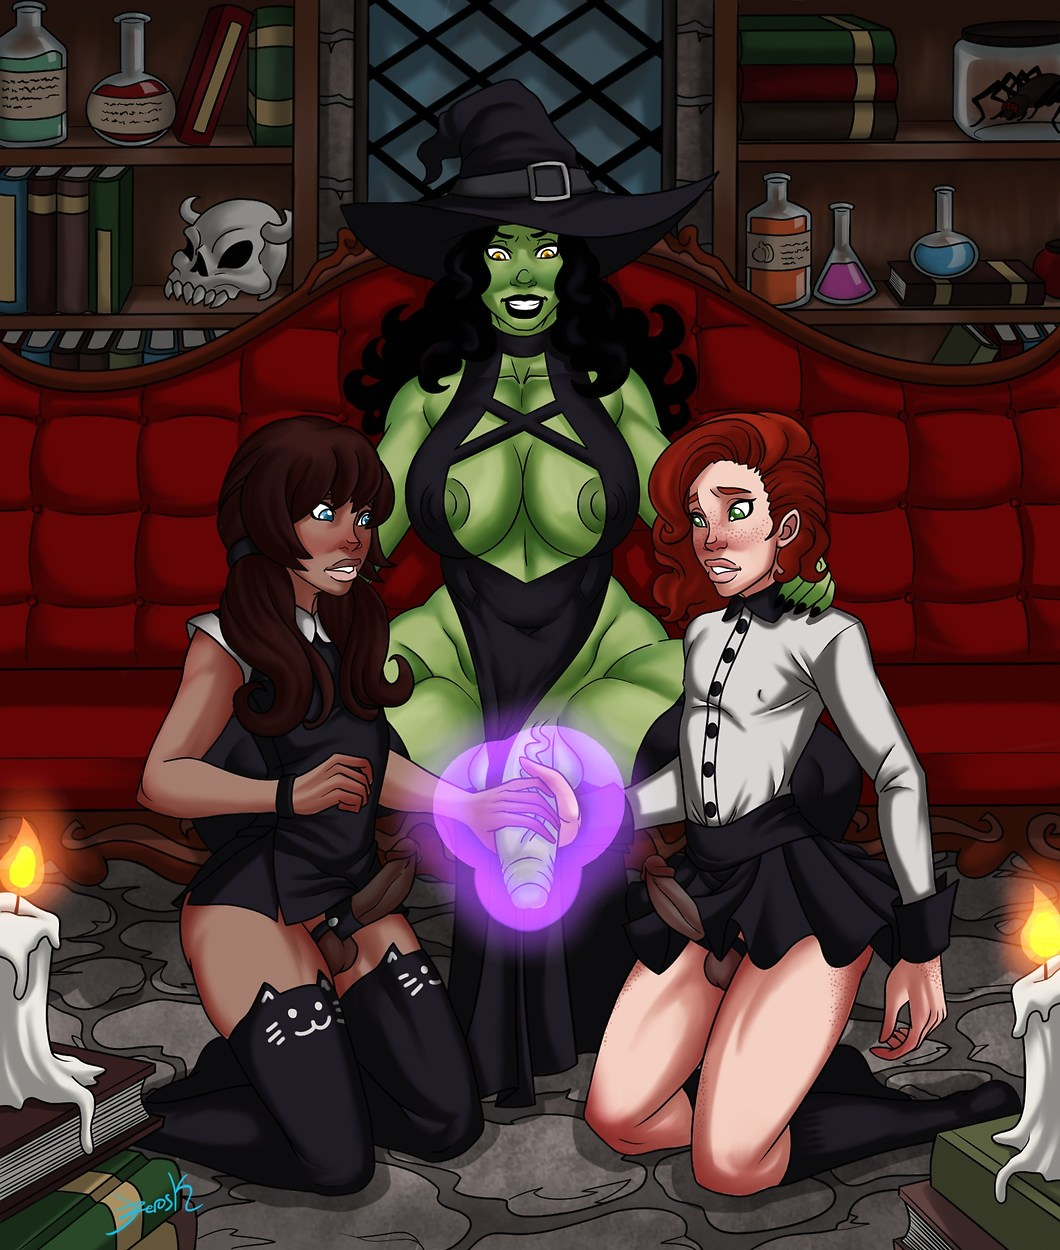 slaughter gamer witch of the Regular show season 5 episode 34